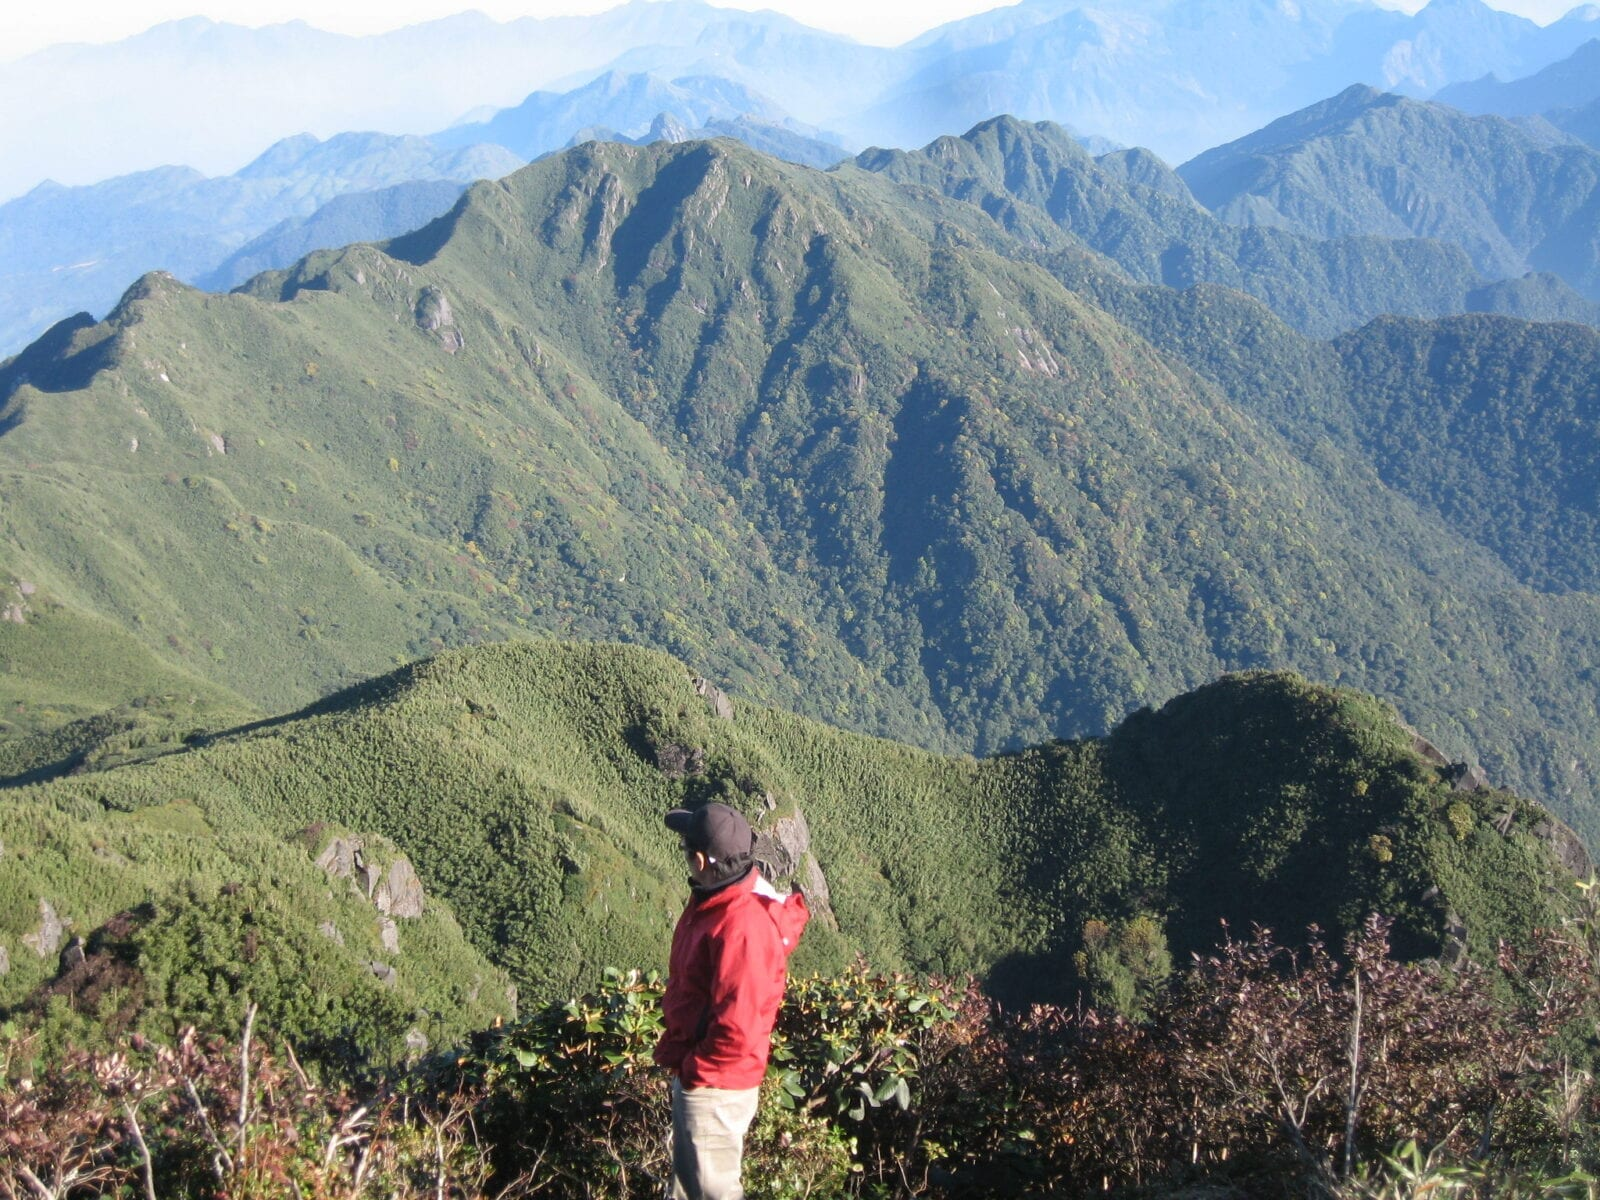 Image of a person looking out at Fansipan Mountain during their hike in Vietnam